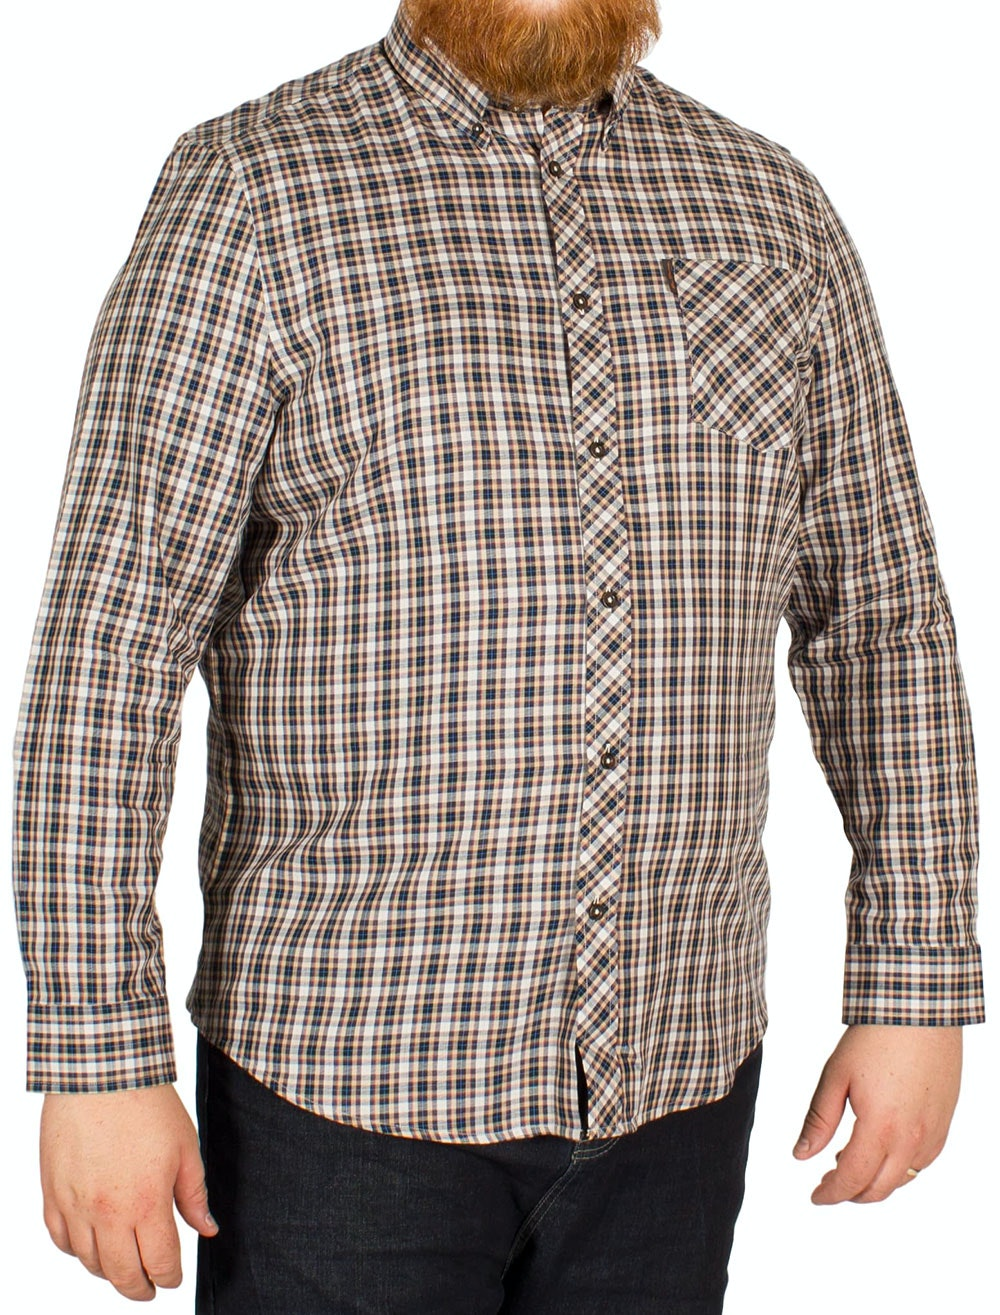 Ben Sherman Twill Check Shirt Beige